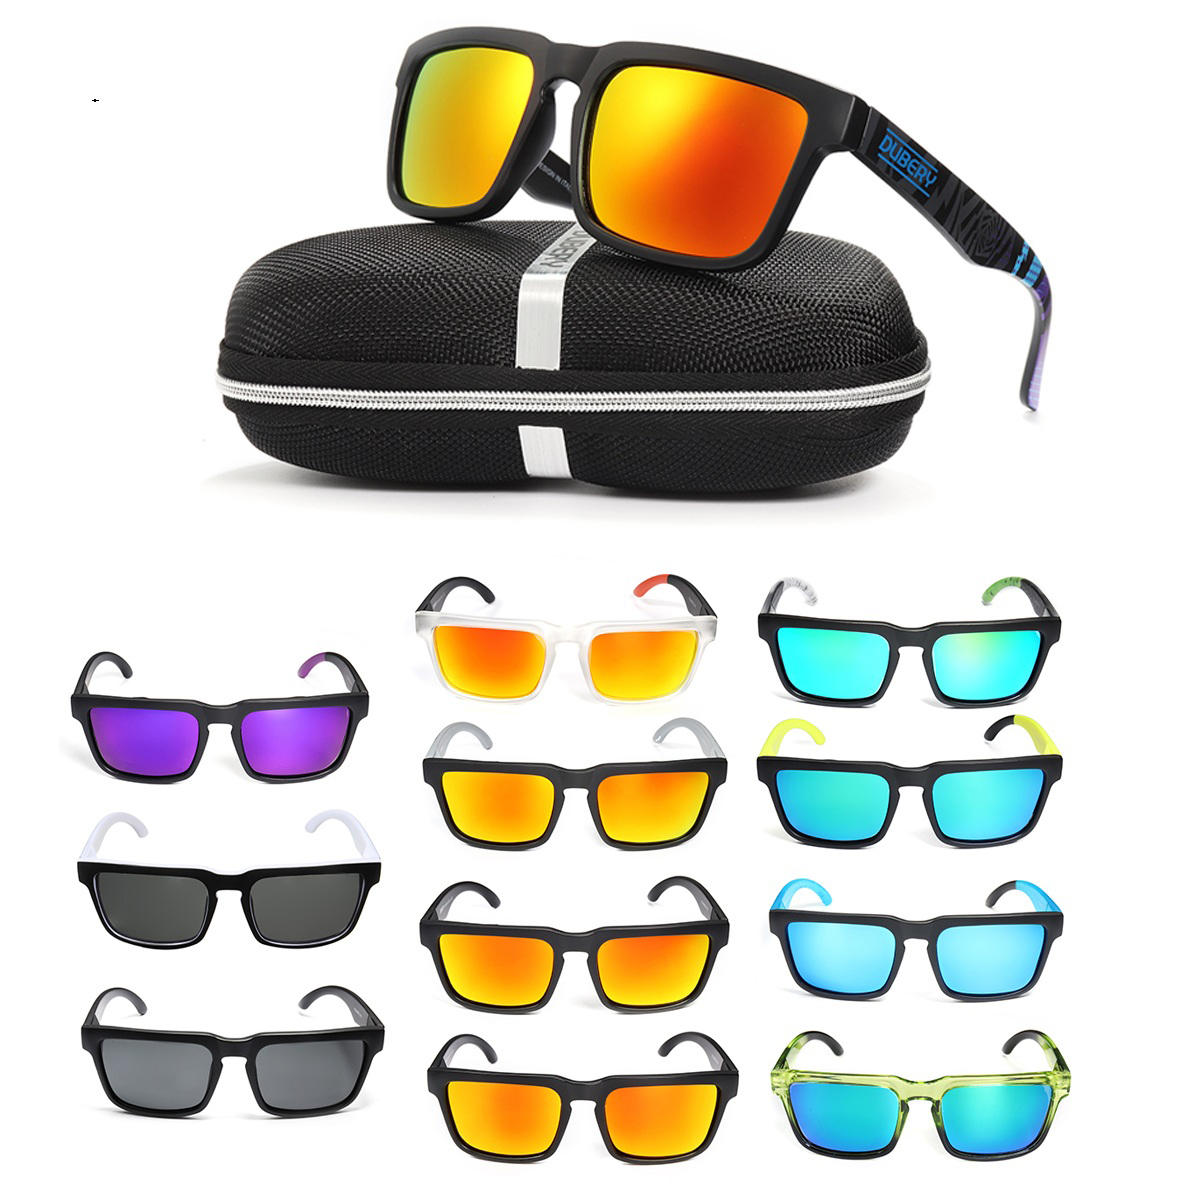 3f0afd7302 Other Warehouse. Send me a coupon on Messenger. DUBERY Unisex UV400  Polarized Sunglasses Sport Driving Fishing Cycling ...